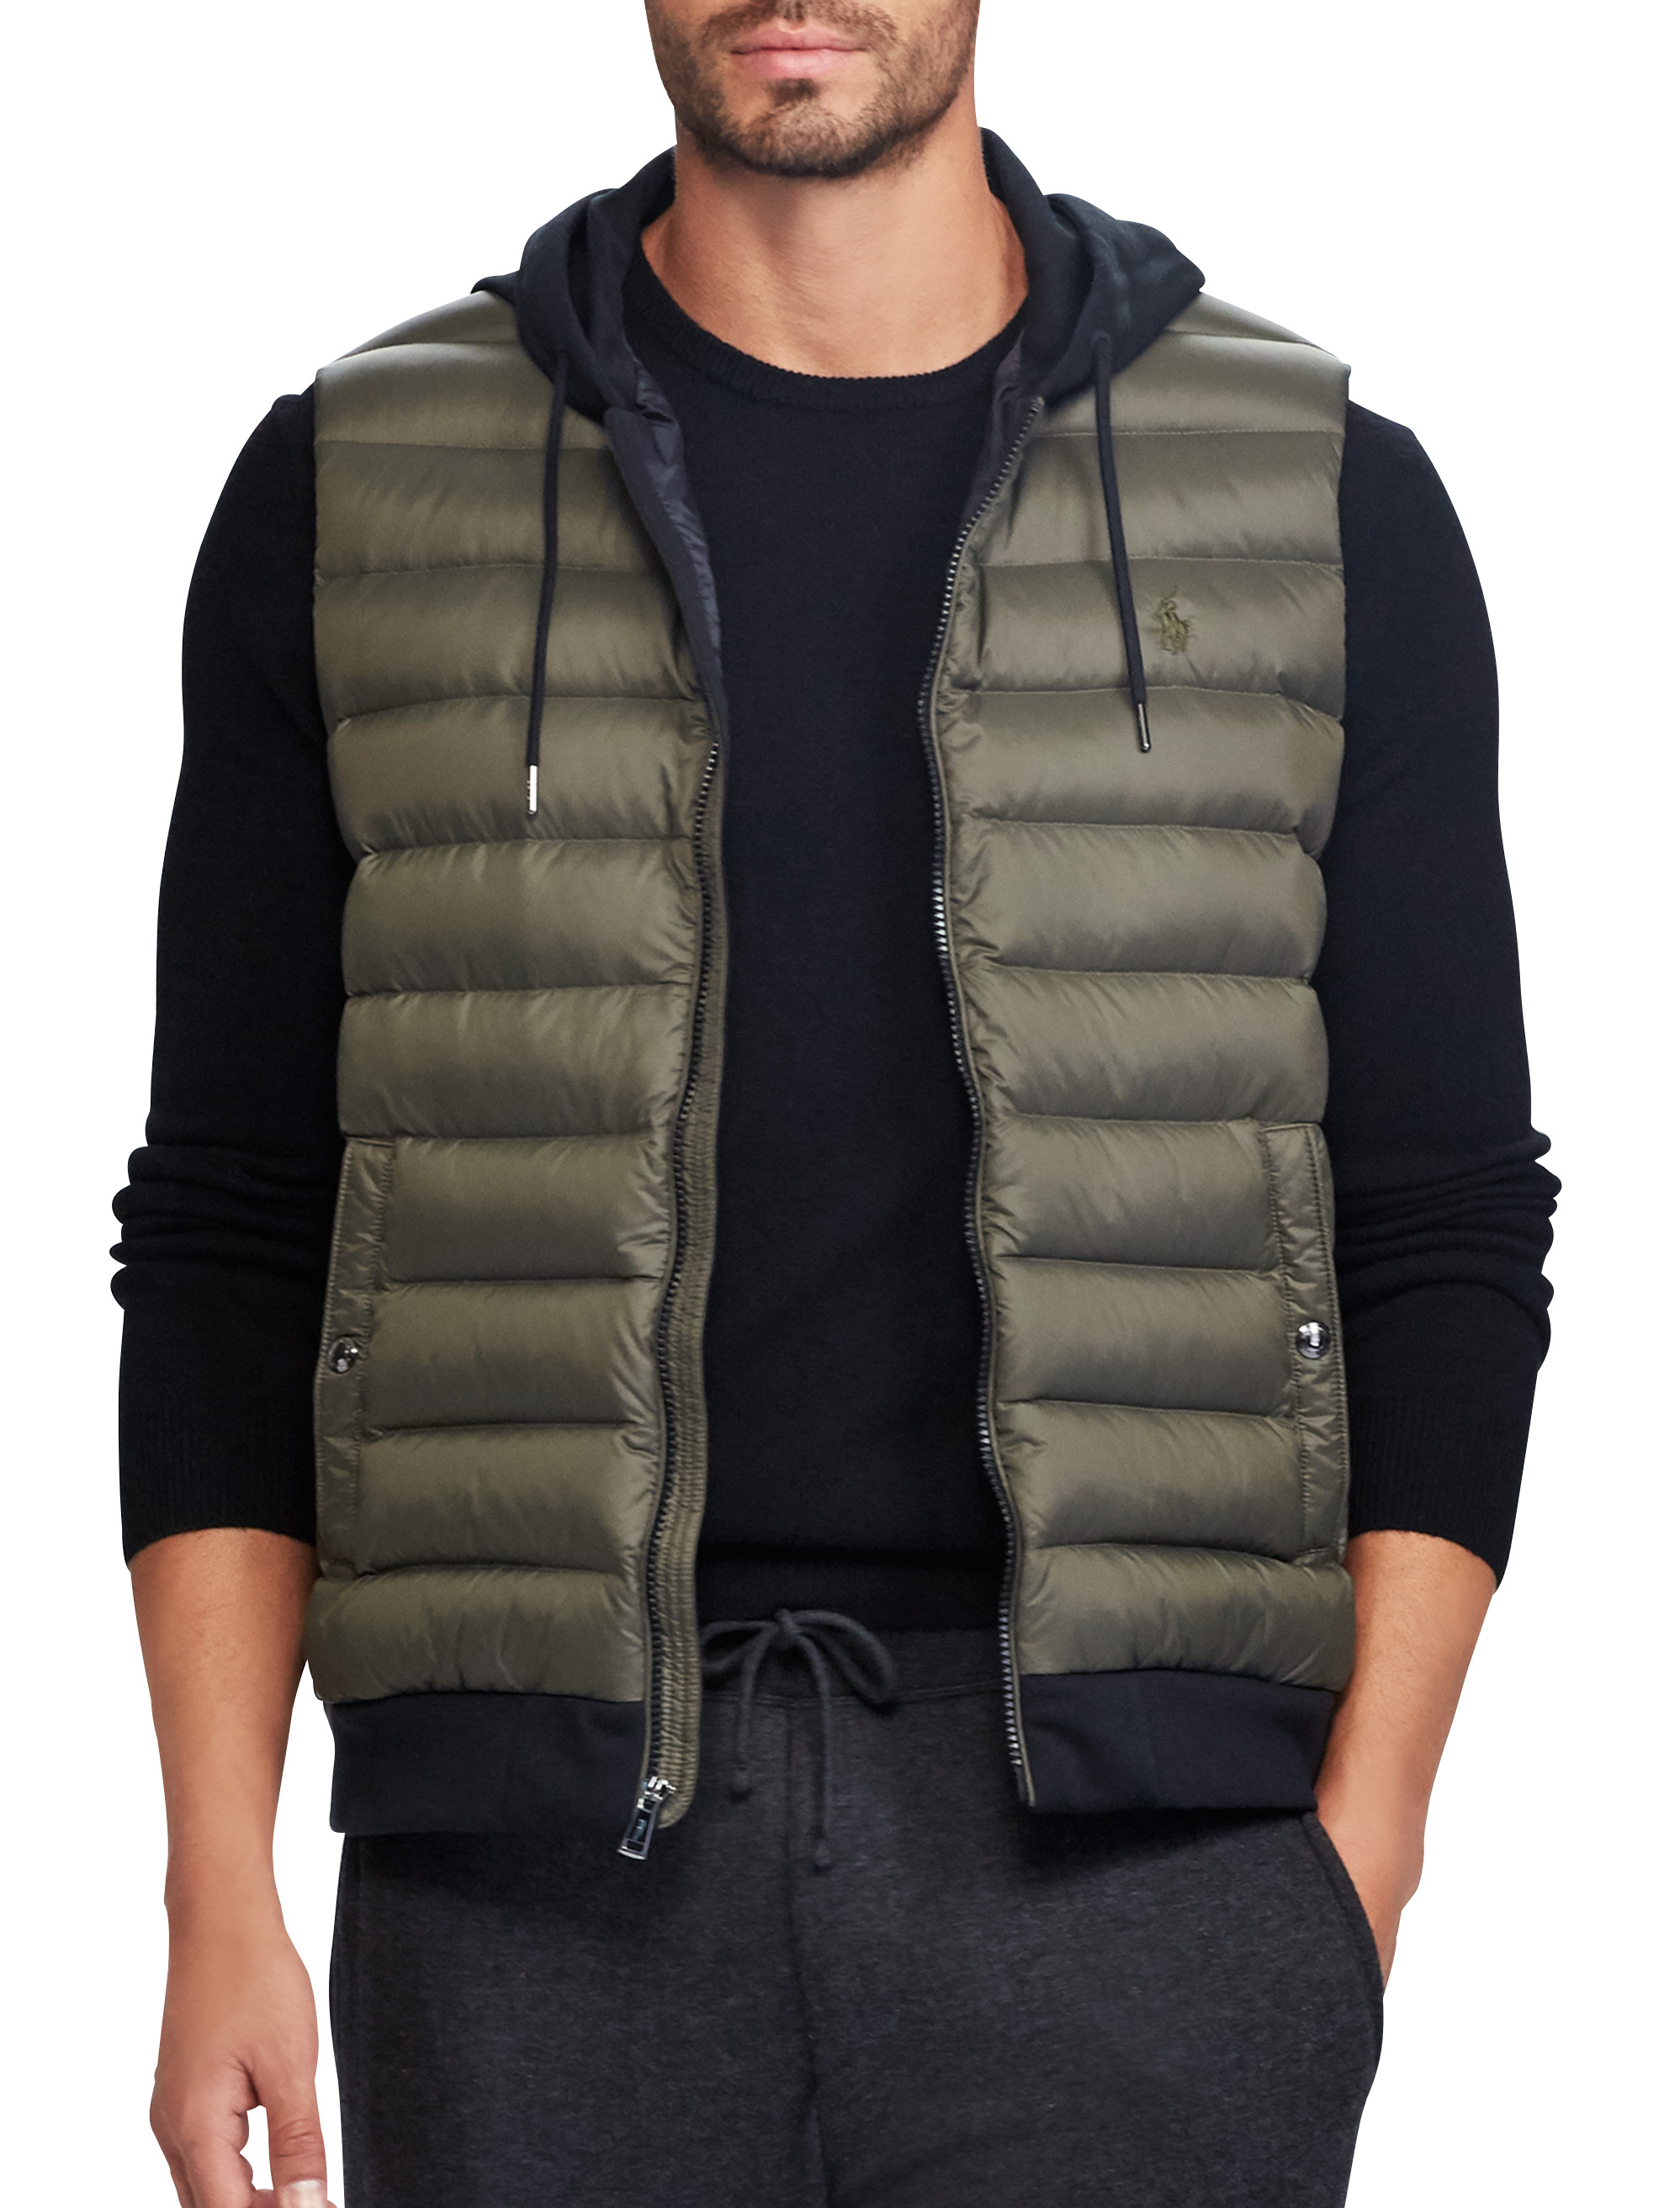 coats quilt ralph jacket fashion c mens muvqwlk down padded jackets lauren p quilted polo and